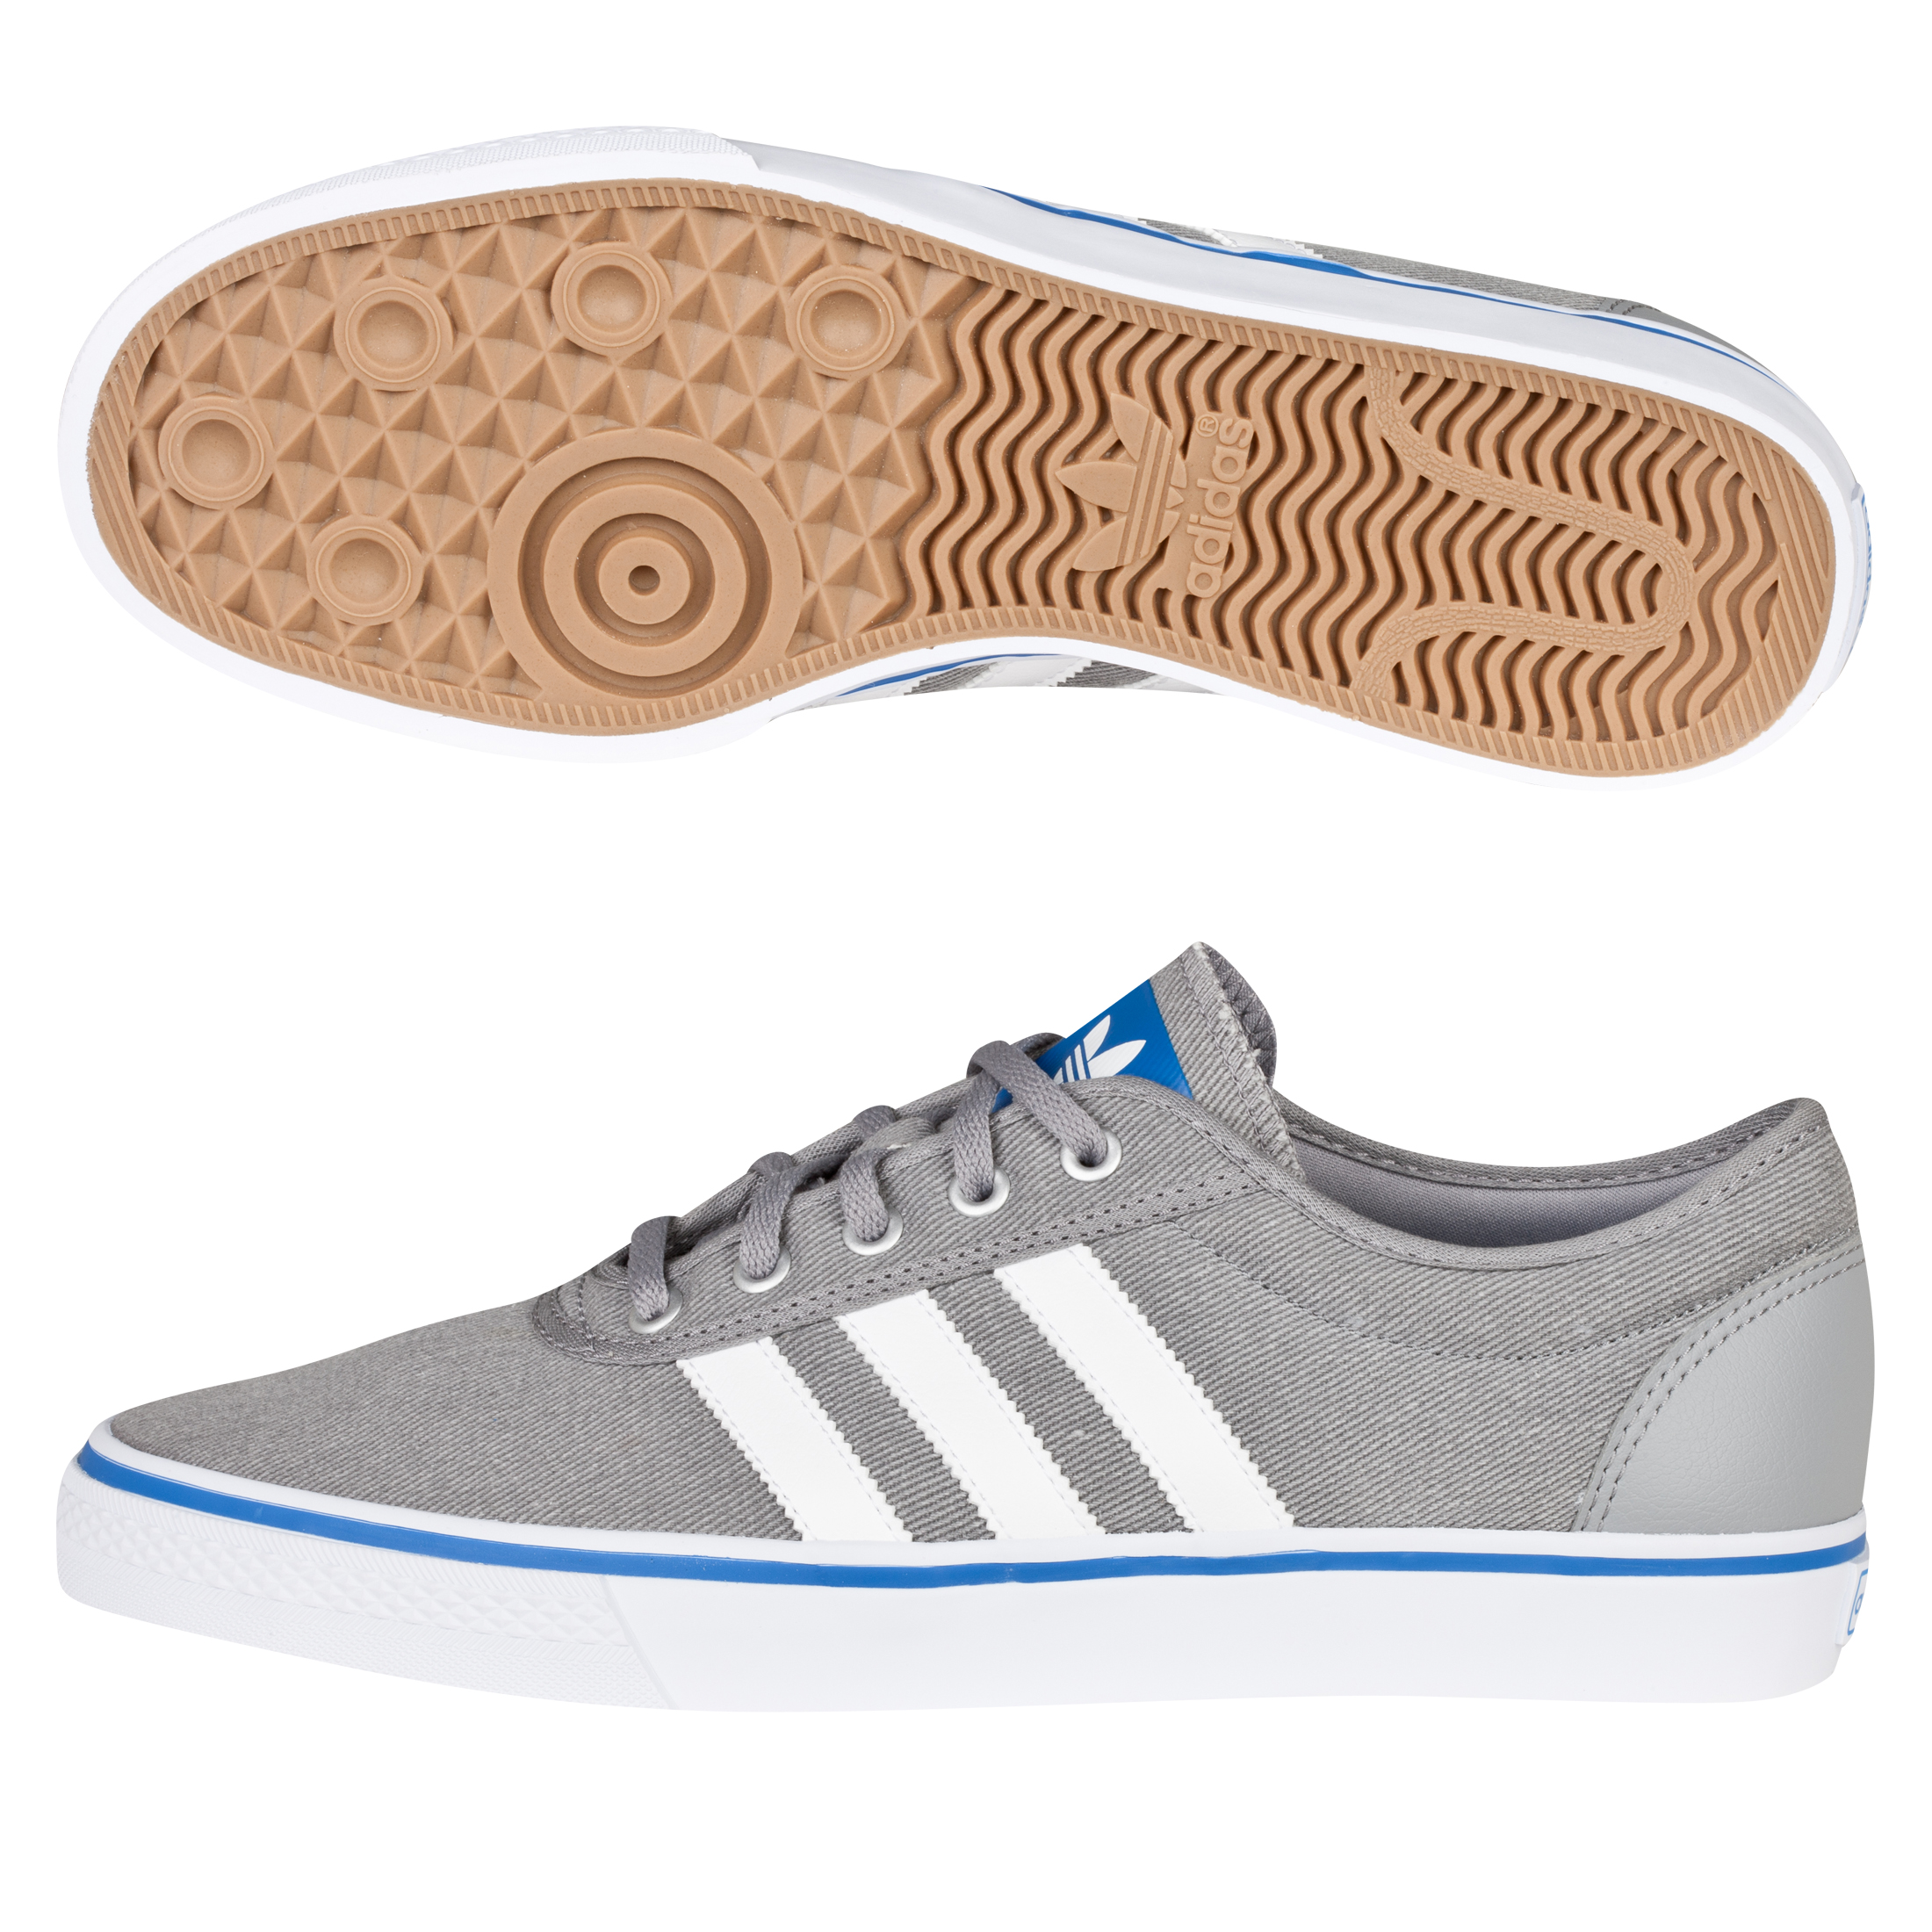 Adidas Originals Adi Ease Trainers - Aluminium/White/Bluebird